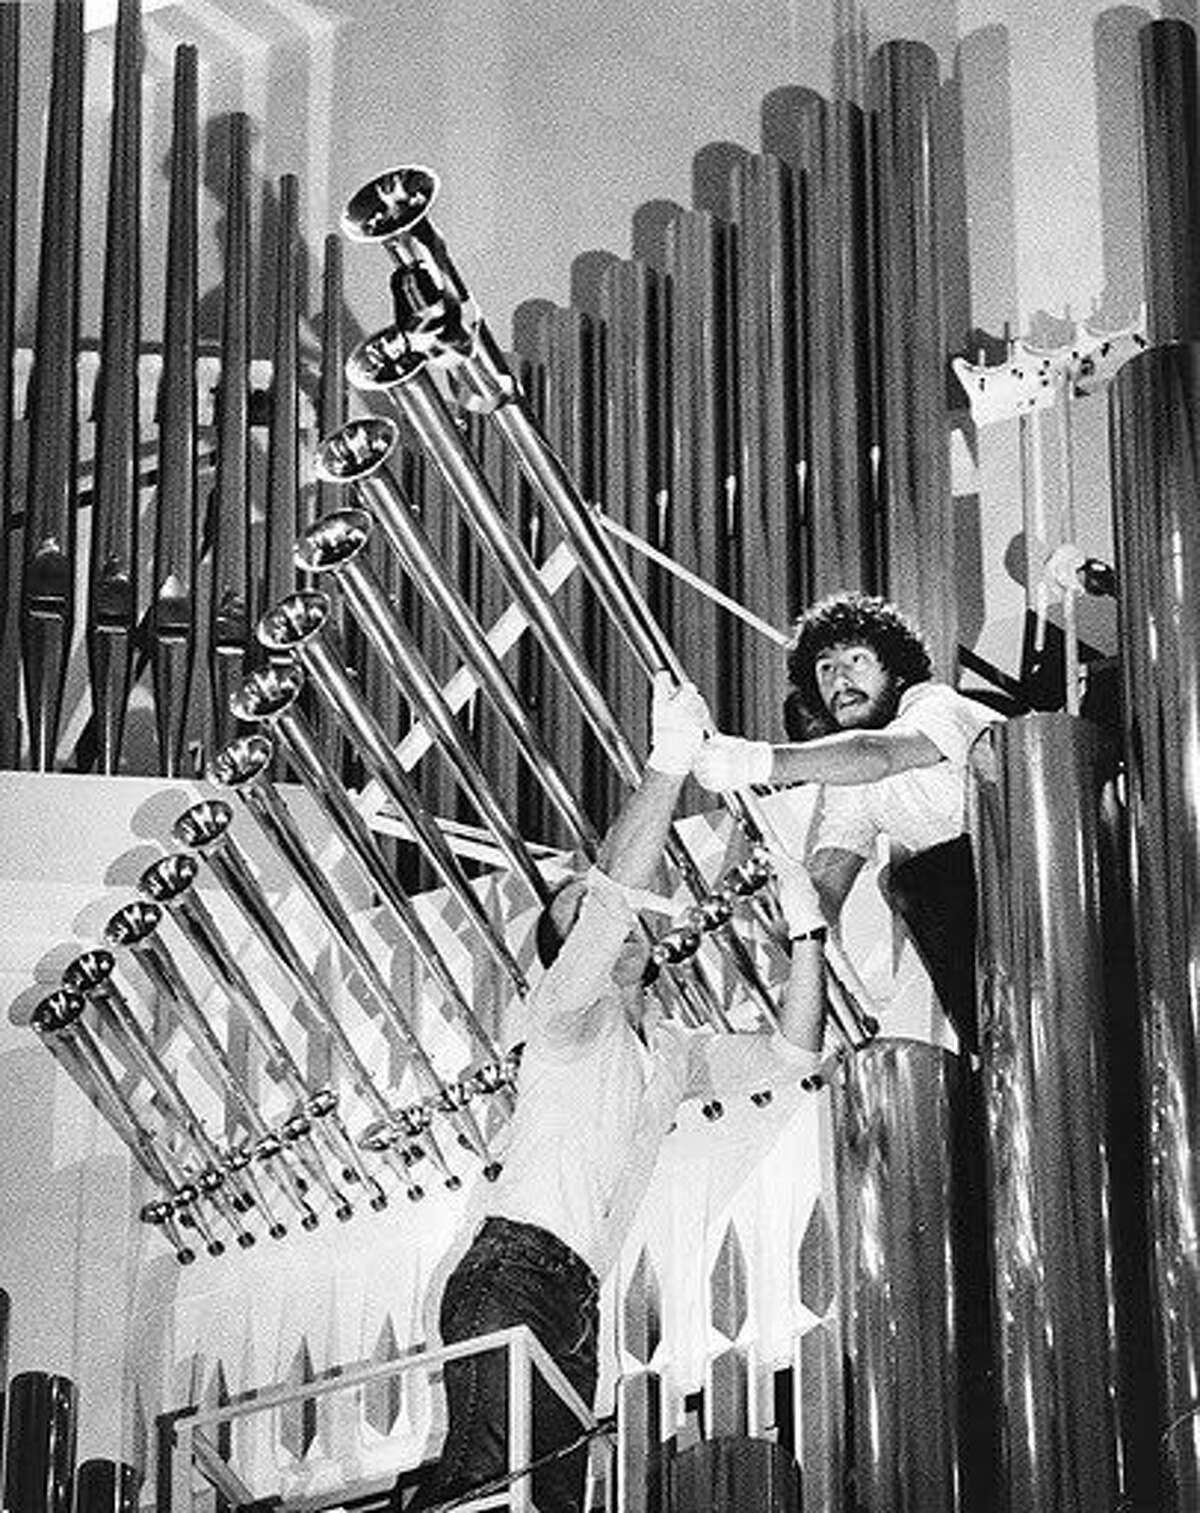 Two installers adjust the last pipes to be installed in the Ruffatti pipe organ in Davies Symphony Hall (1984). Photo credit: Chris Stewart